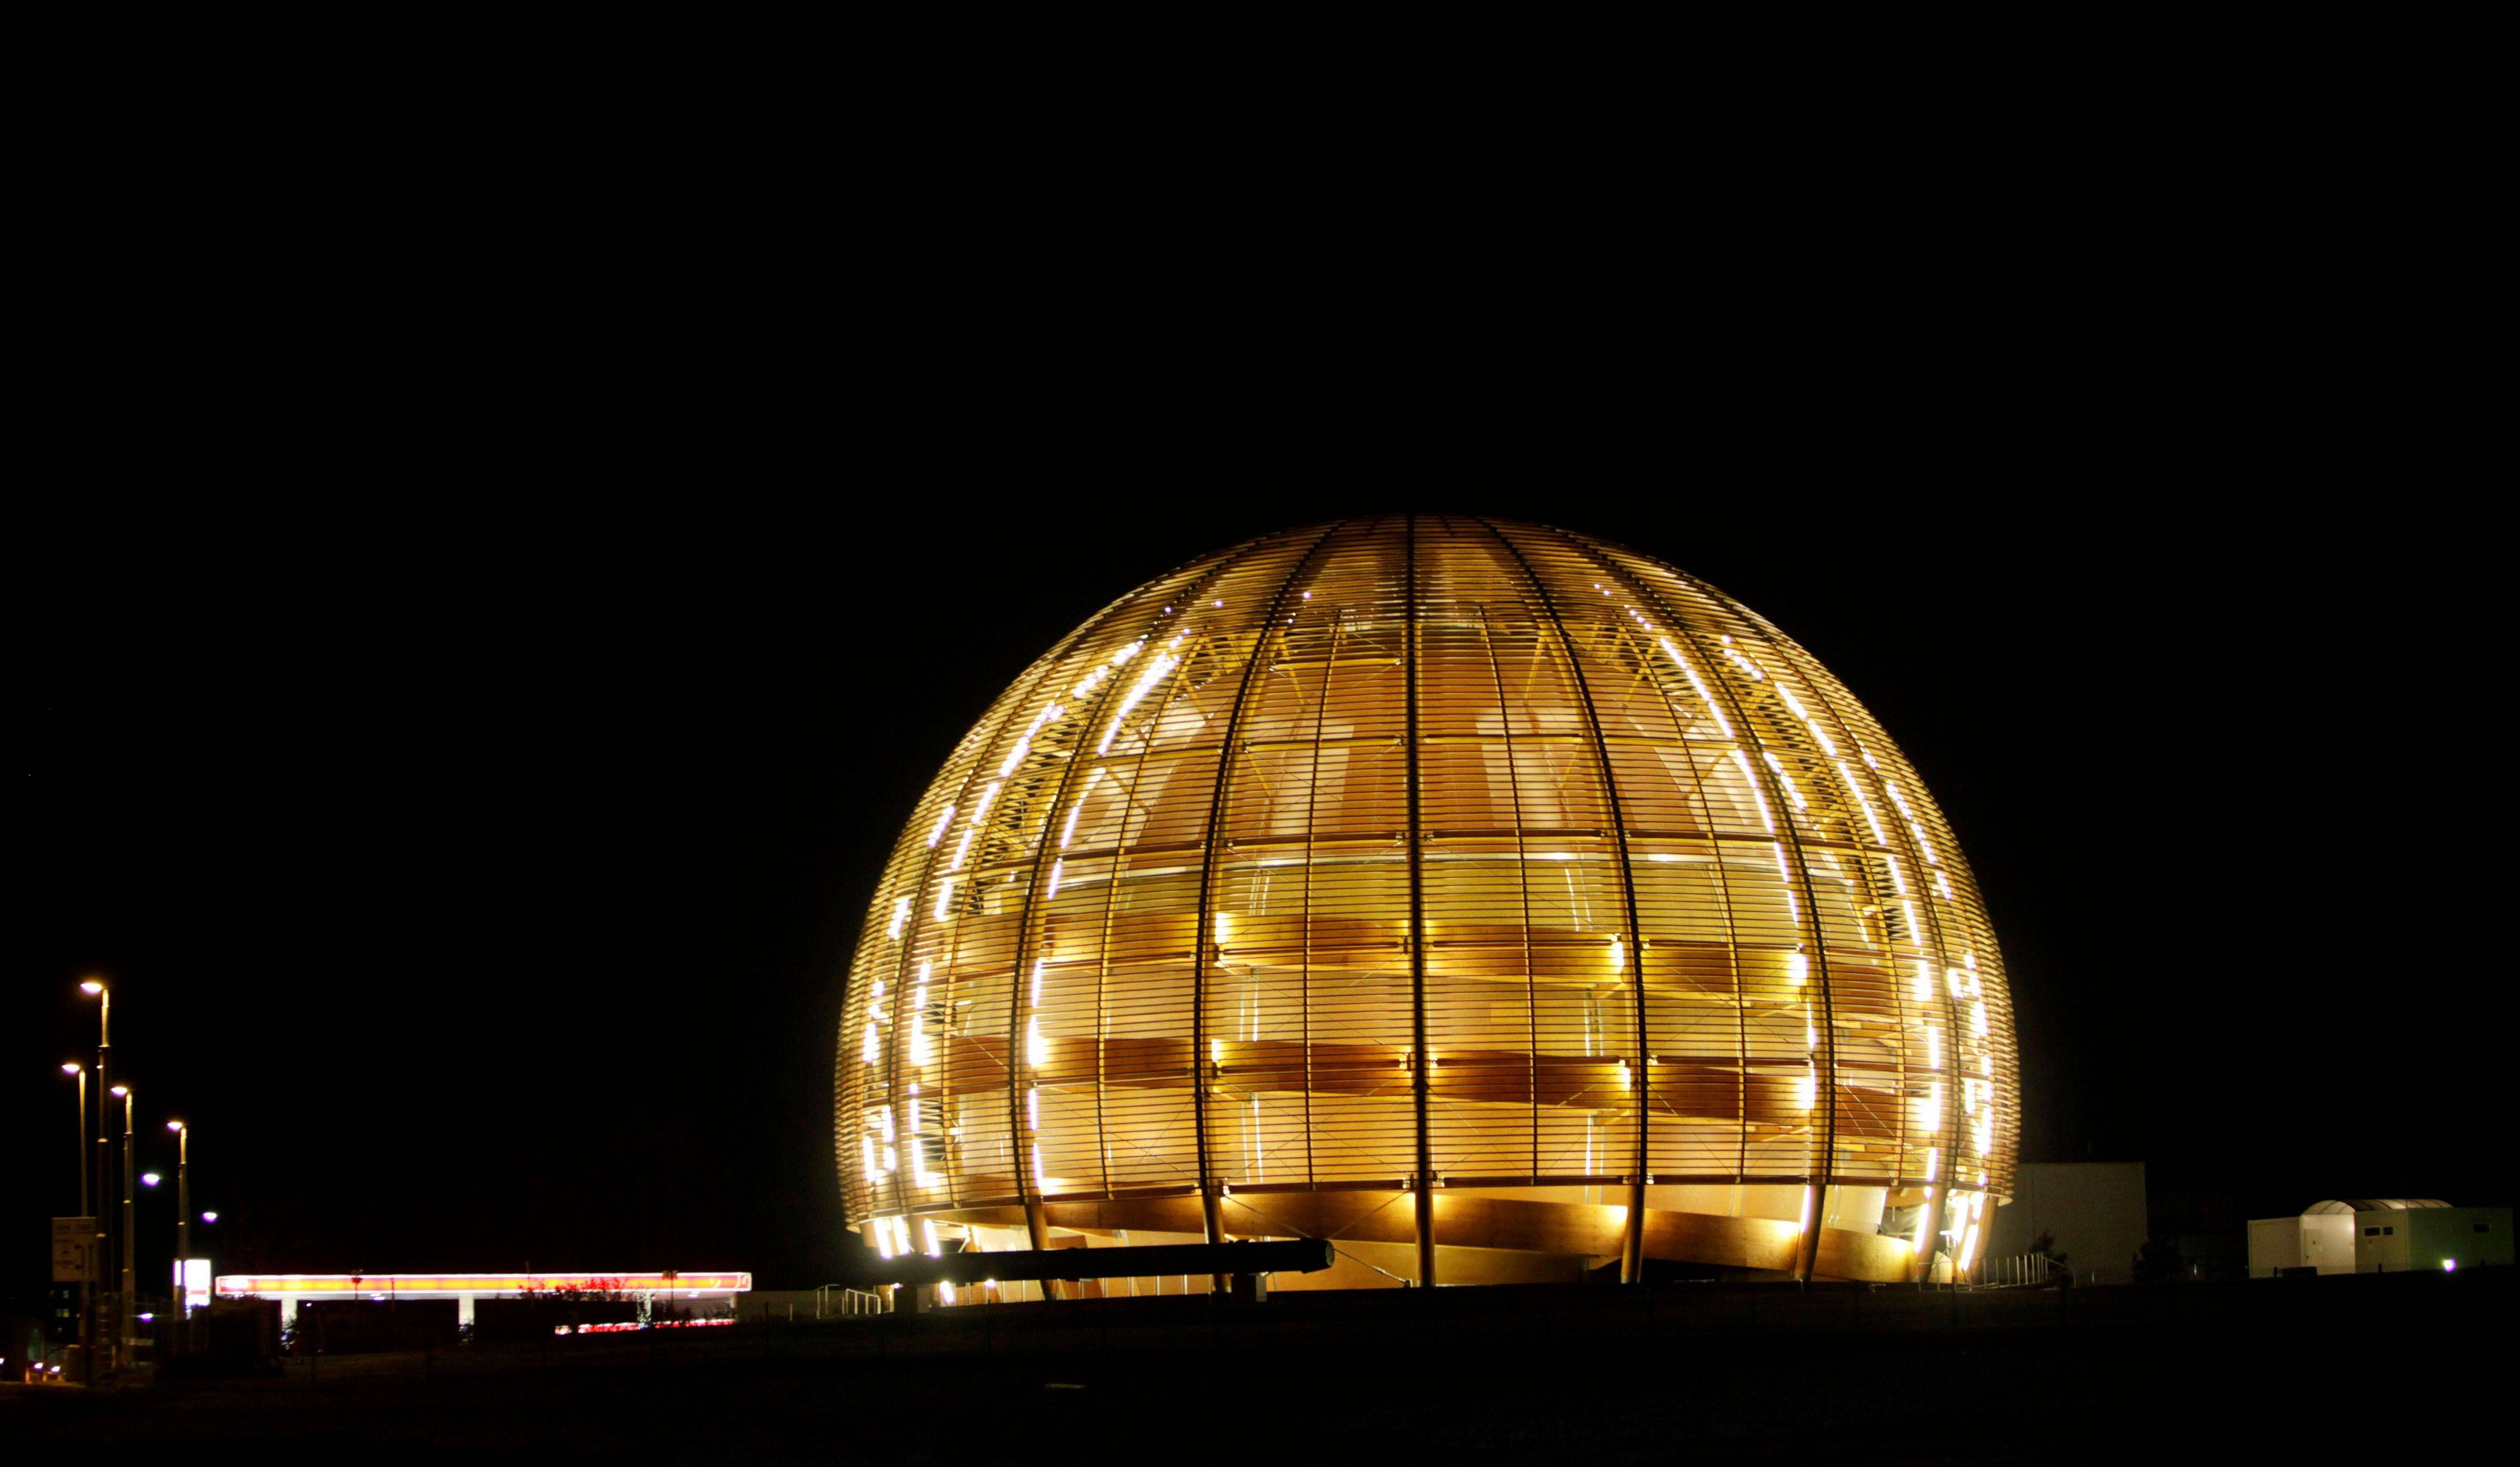 The globe of the European Organization for Nuclear Research, CERN, is illuminated outside Geneva, Switzerland.